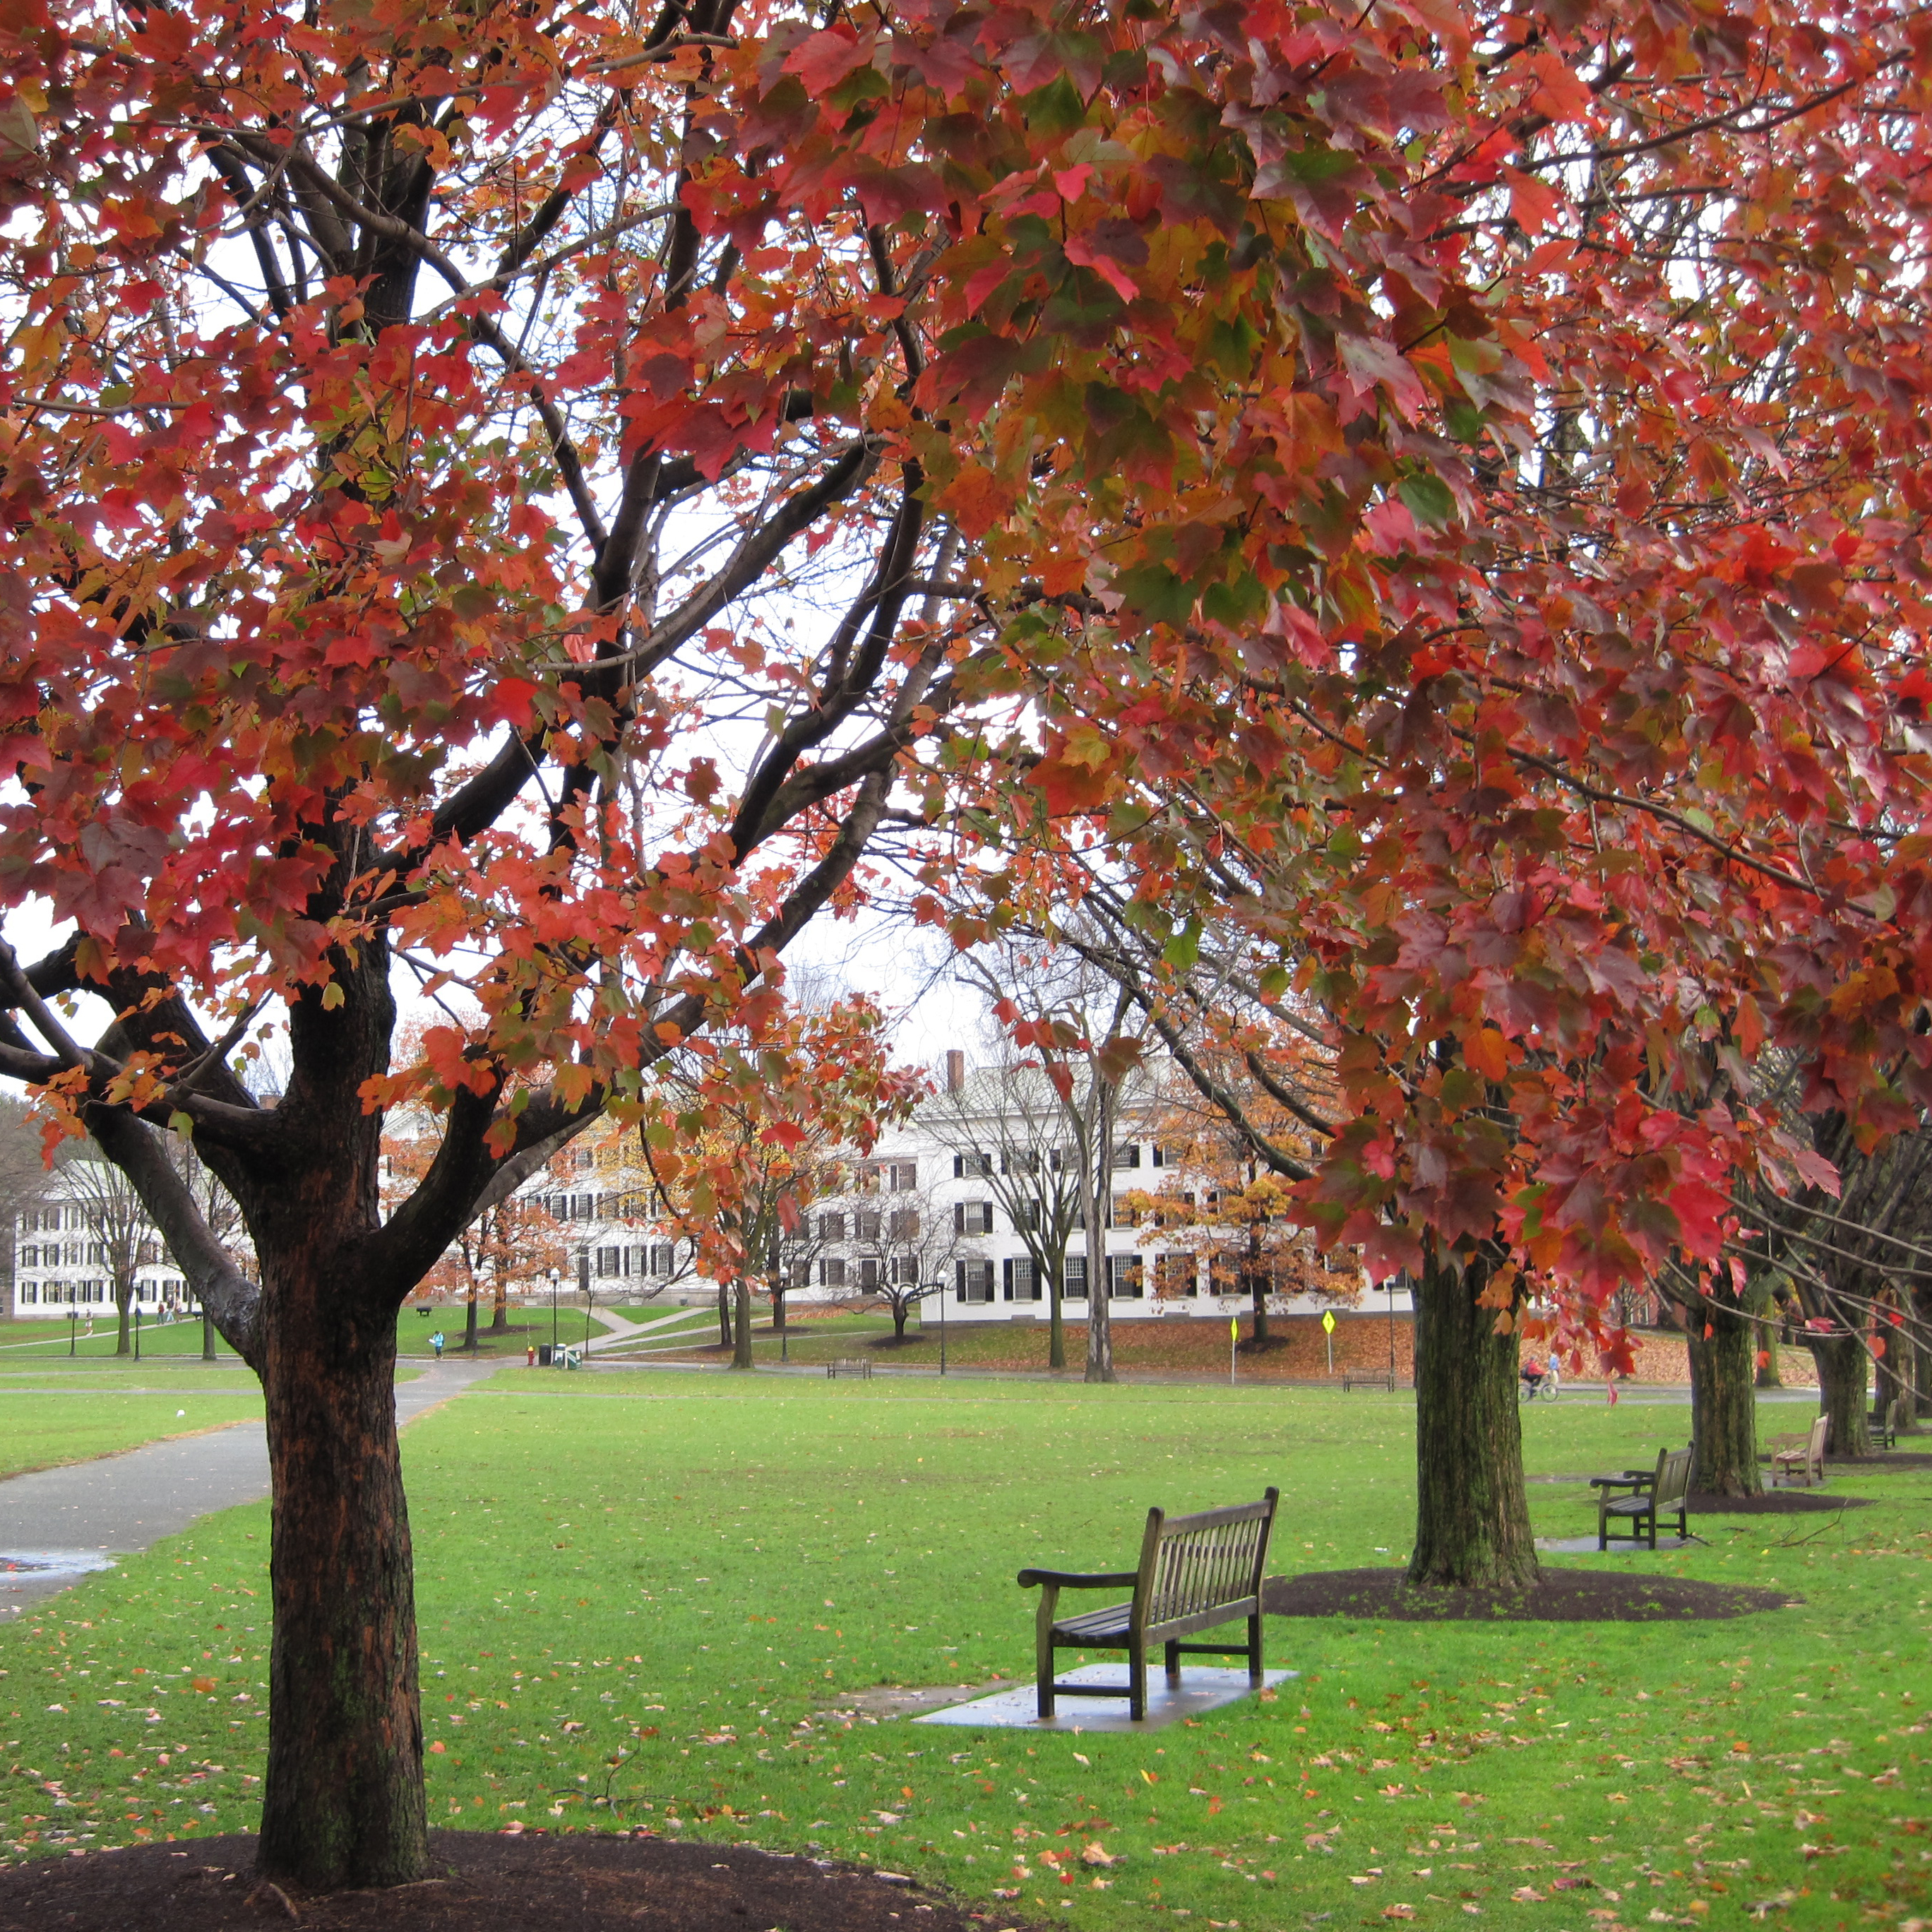 Dartmouth-Green-Fall-Leaves-Benches.jpg